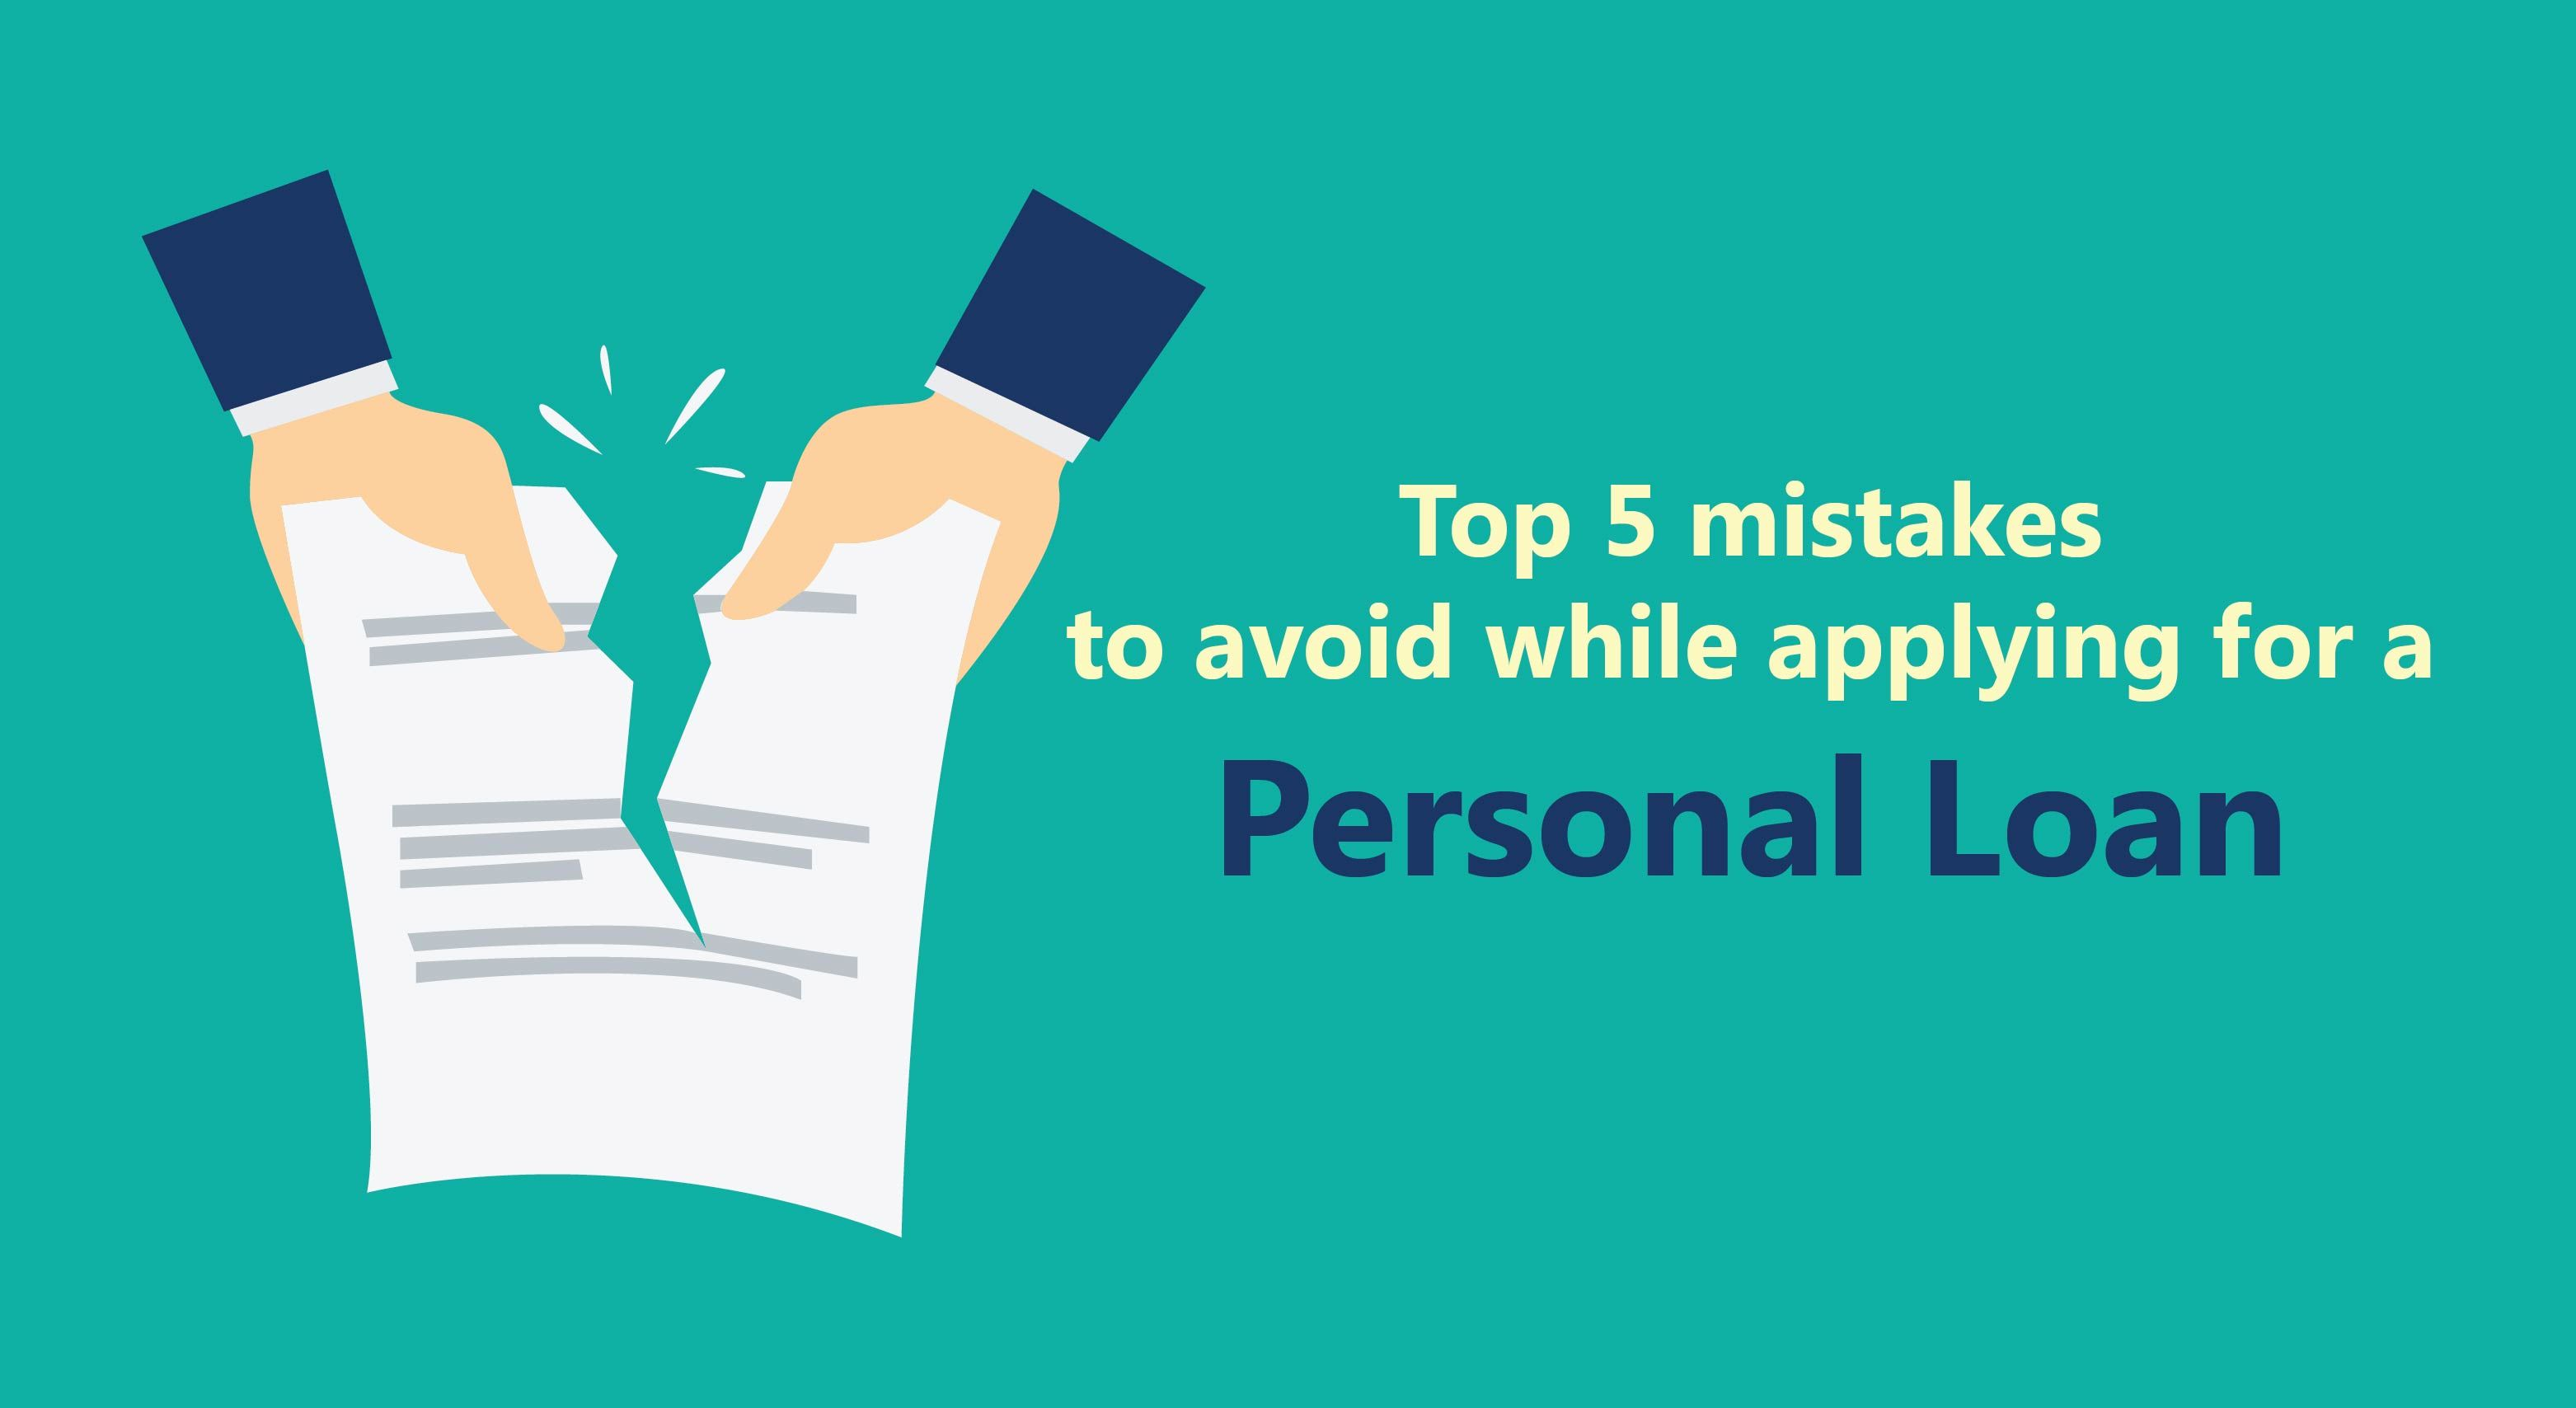 Top 5 Mistakes To Avoid While Applying For A Personal Loan Iservefinancial Fintech Personalloan Loan India Mum Personal Loans Finance Goals How To Apply